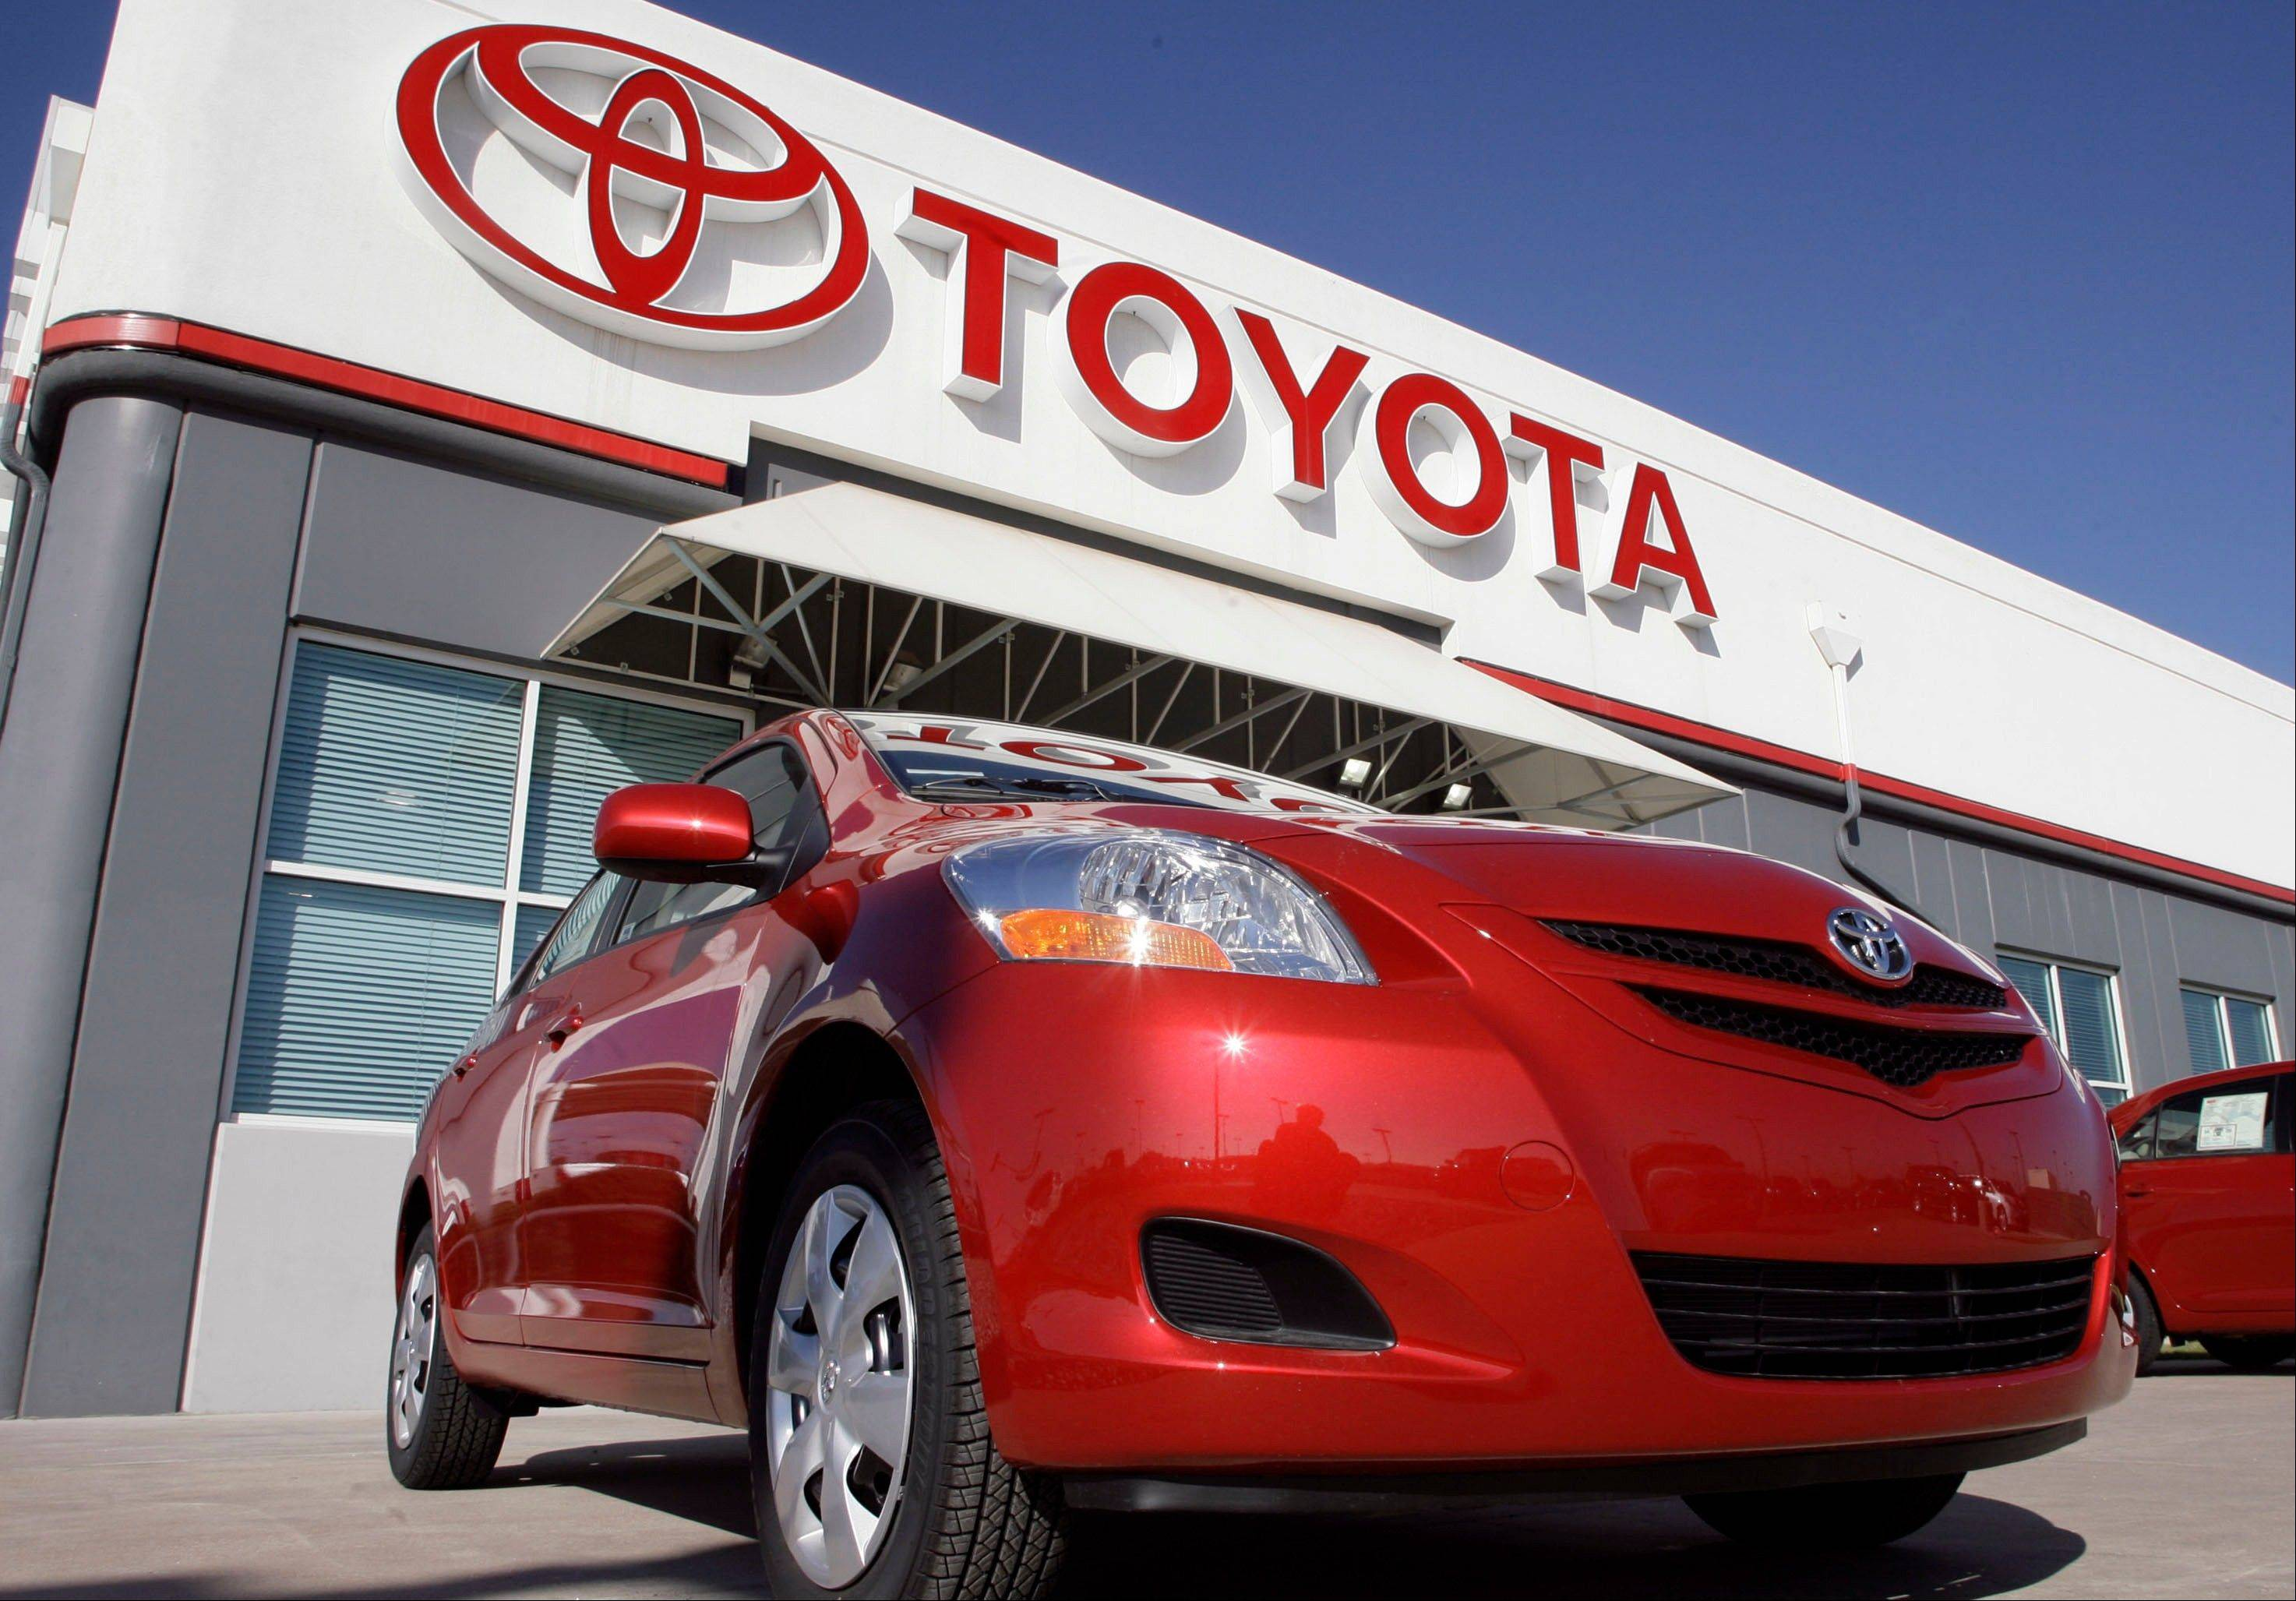 A plaintiffs' attorney says Toyota Motor Corp. has reached a settlement in a case involving hundreds of lawsuits over accelerations problems.